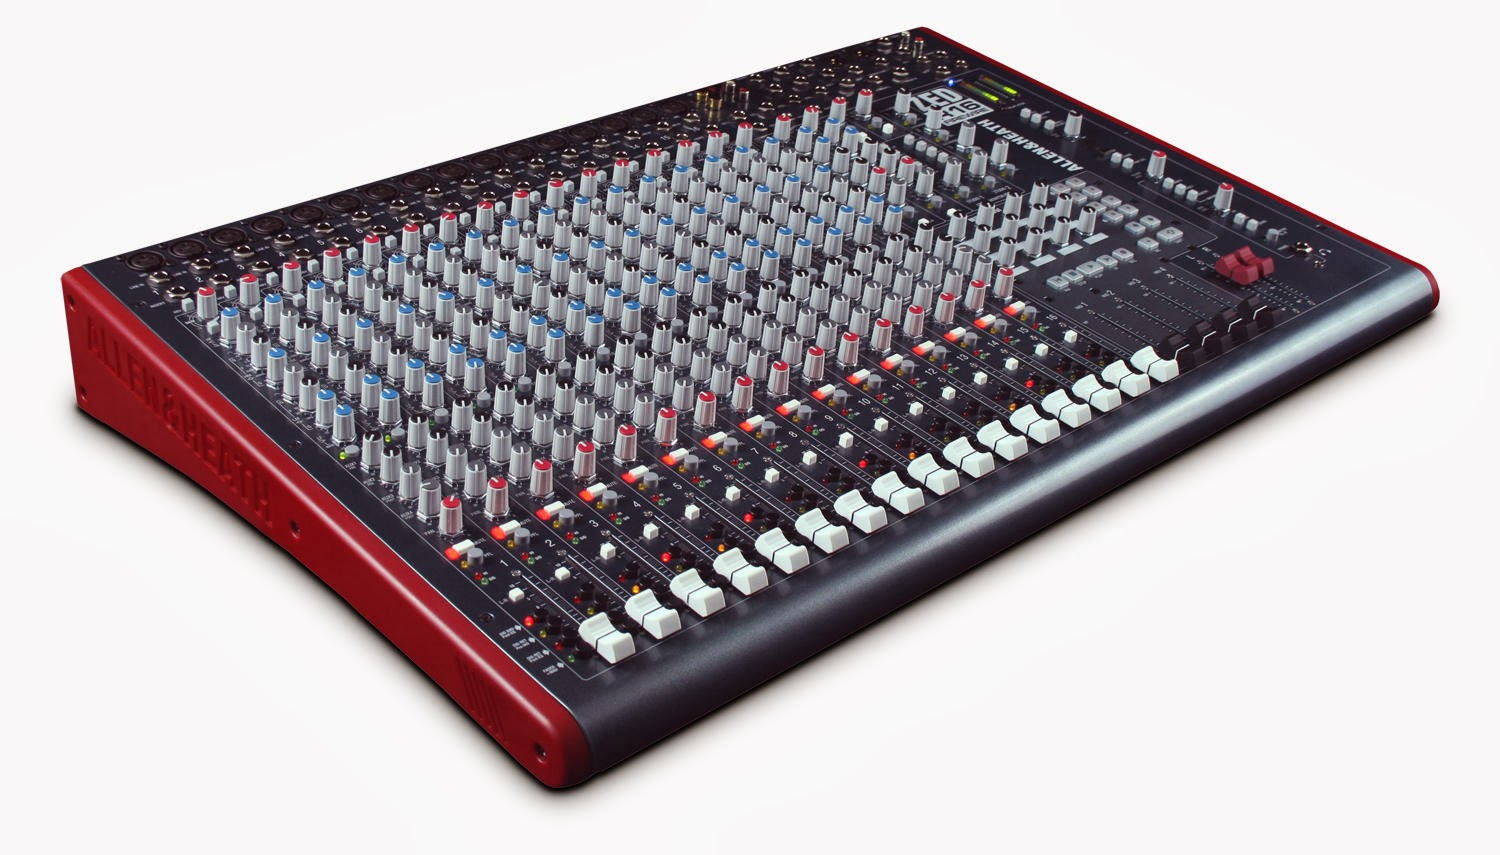 ALLEN HEATH ZED-R16 MIXER